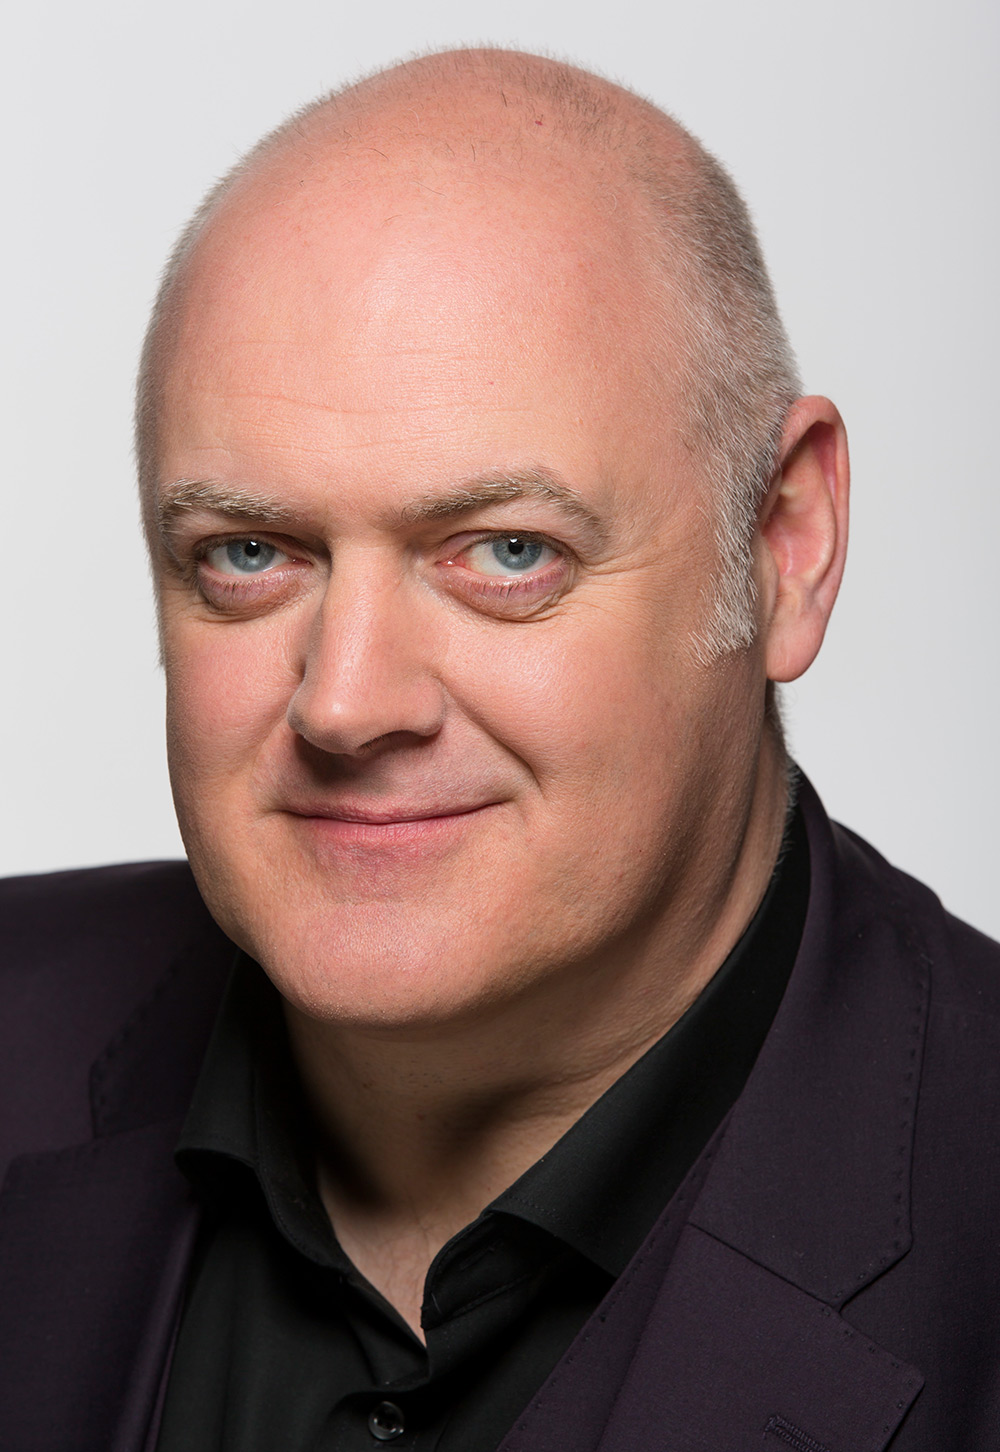 O'Briain almost moved to Melbourne 16 years ago.